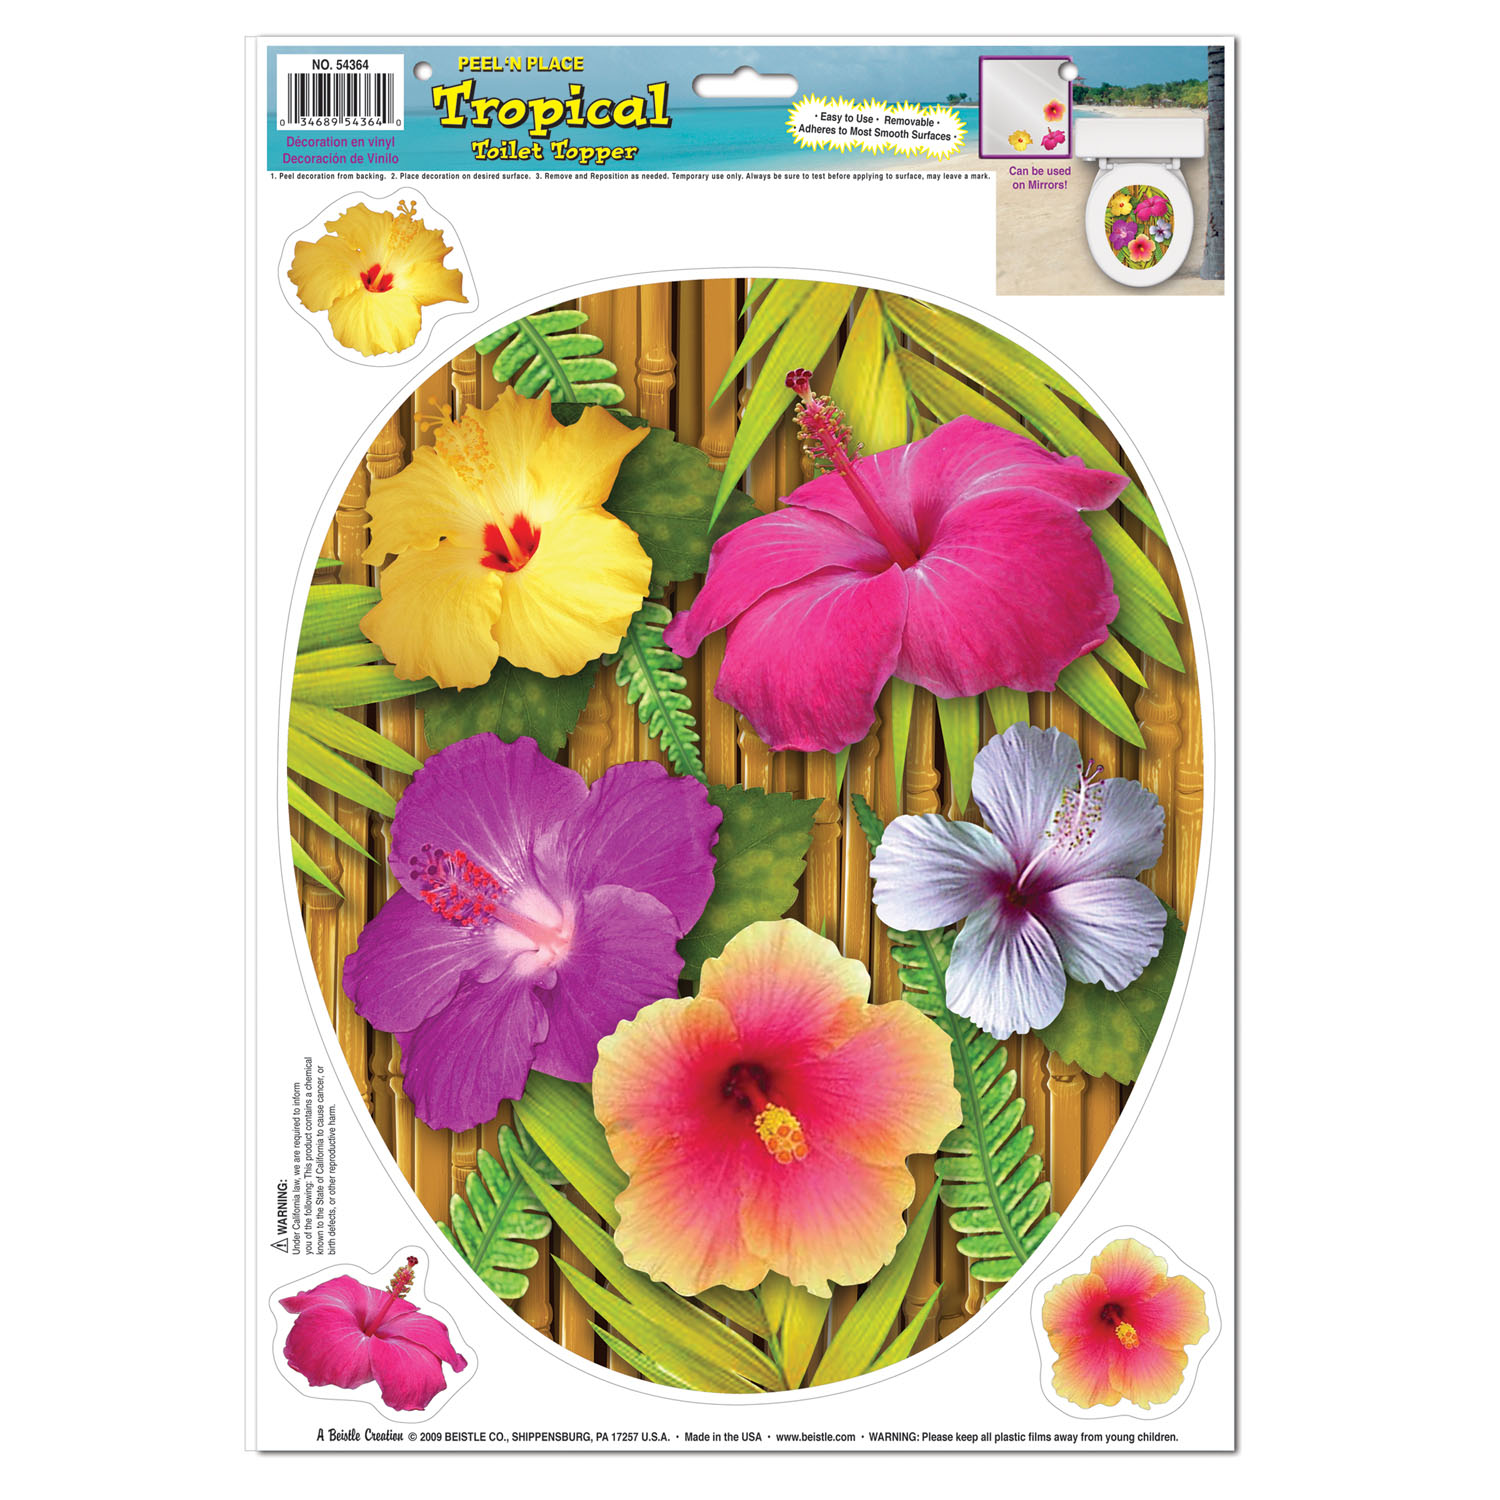 Tropical Toilet Topper Peel N Place (Pack of 12) Tropical Toilet Topper Peel N Place. decoration, luau, new years eve, wholesale, inexpensive, bulk